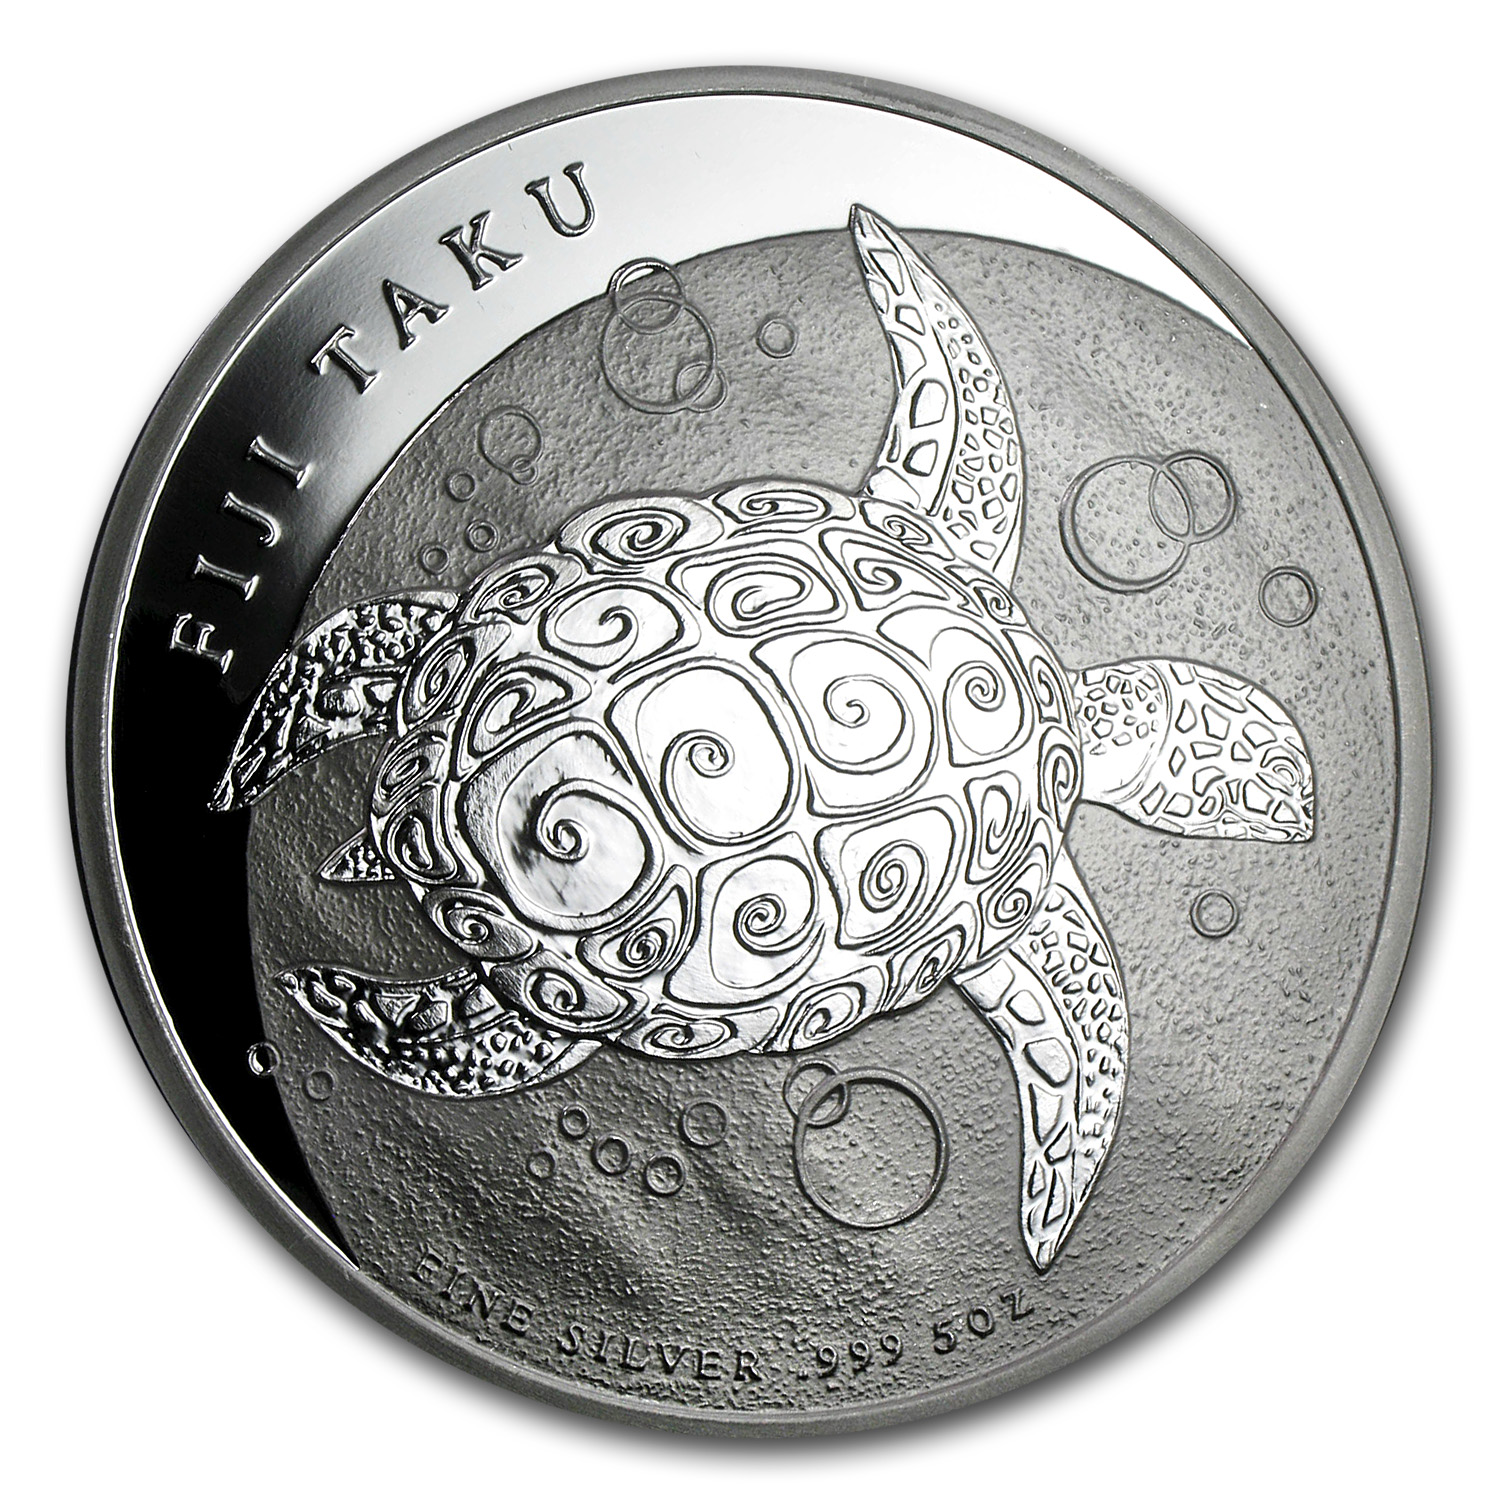 2012 5 oz Silver New Zealand Mint $10 Fiji Taku